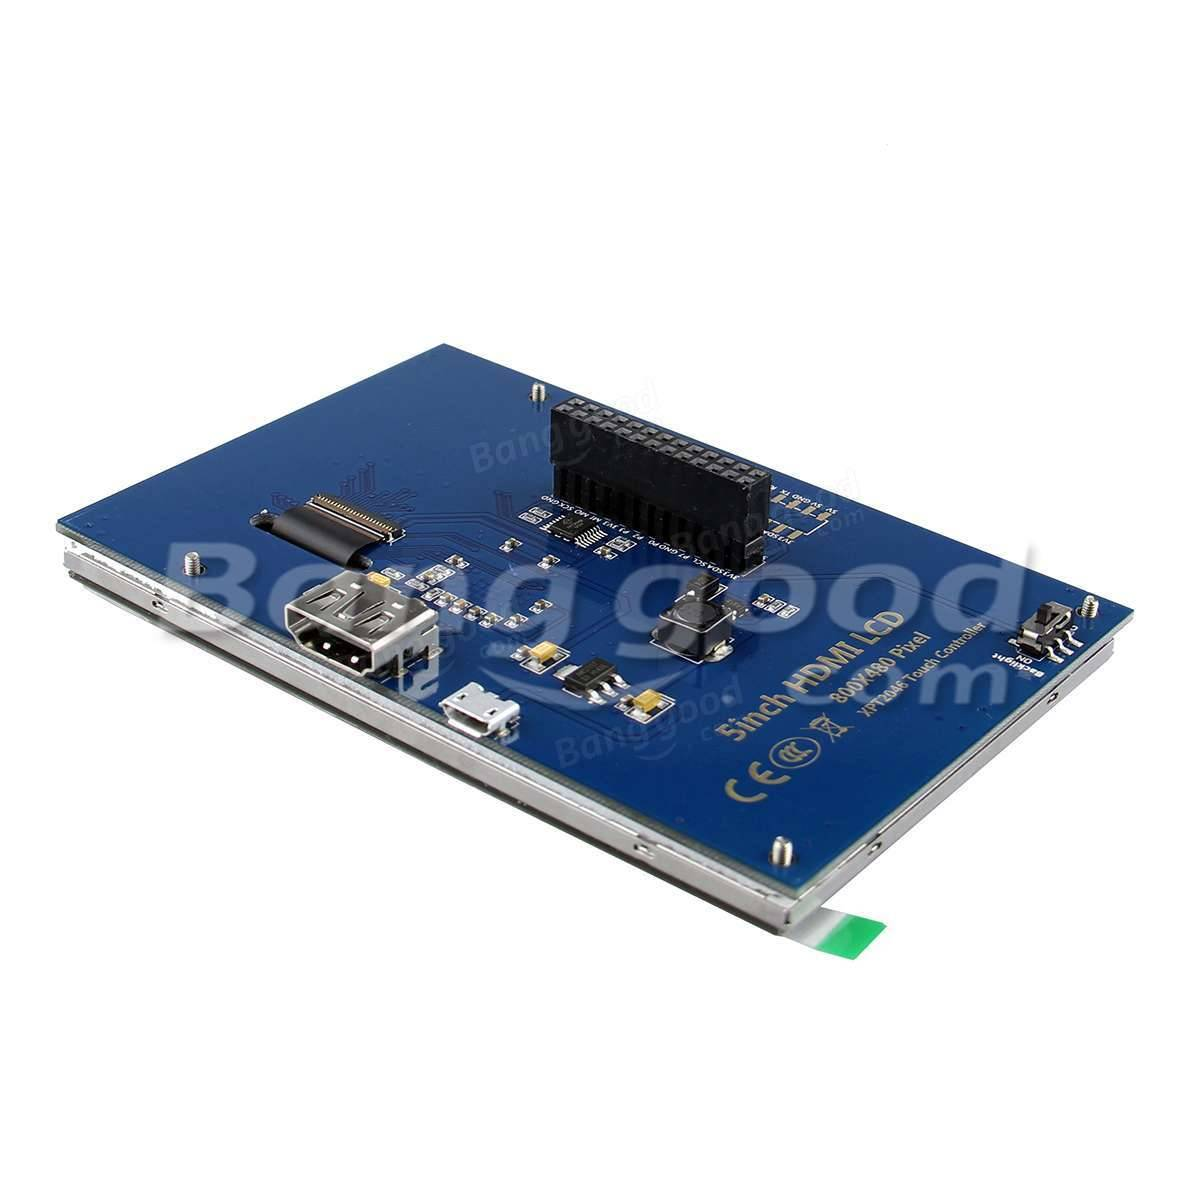 5 Inch HD TFT LCD Touch Screen For Raspberry PI 2 Model B / B+ / A+ / B